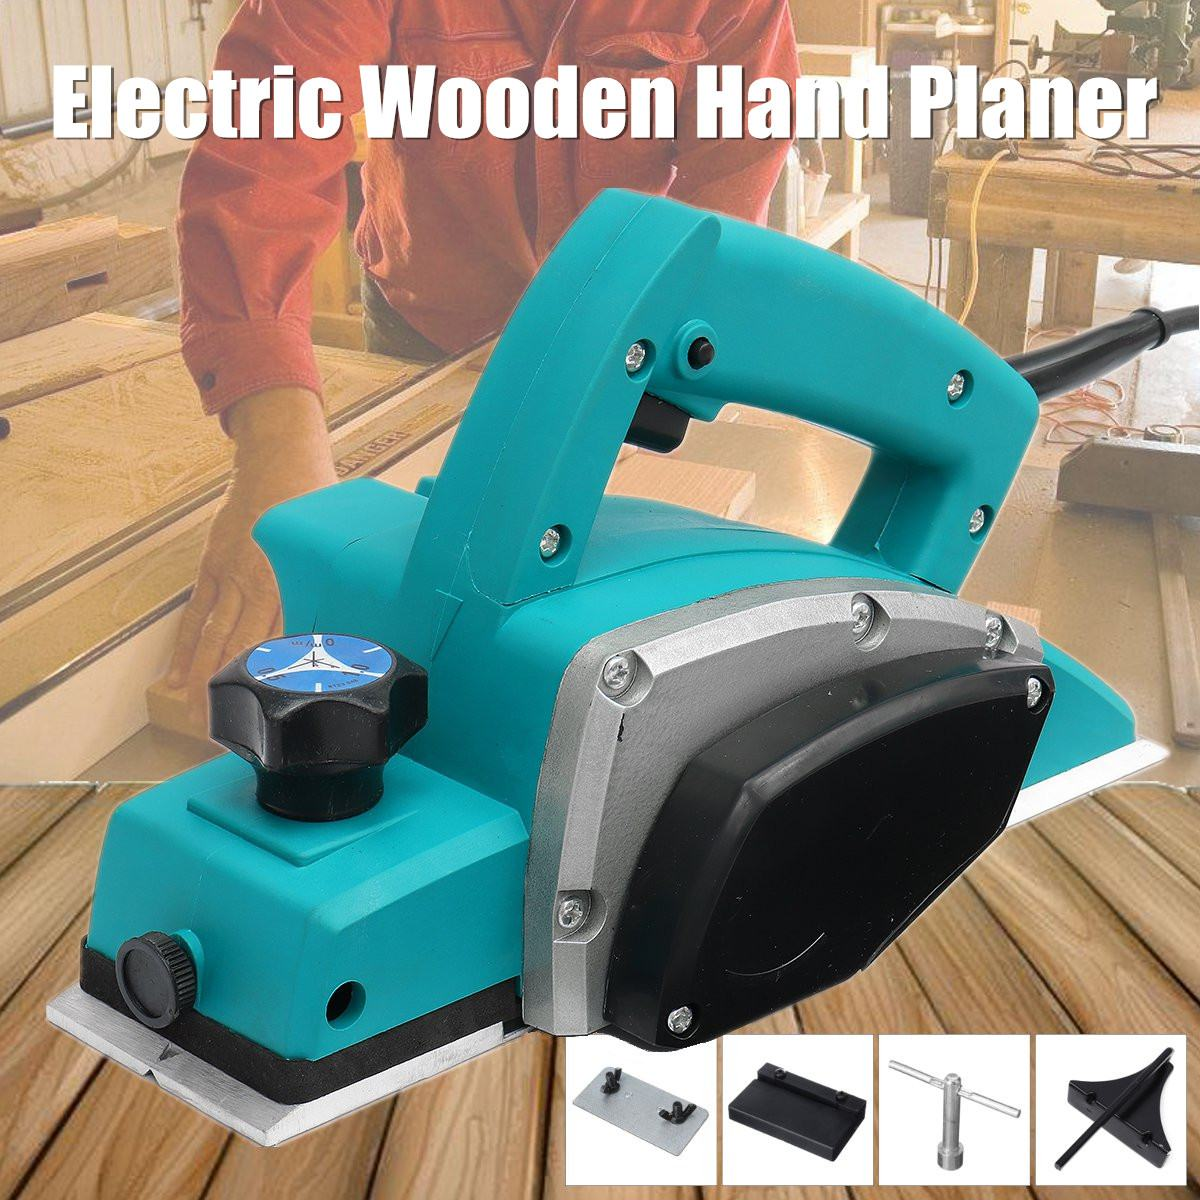 Multifunction 220V/110V 1000W Electric Planer Handheld Wooden Planer Carpenter Woodworking File Tool Home DIY Power Tools